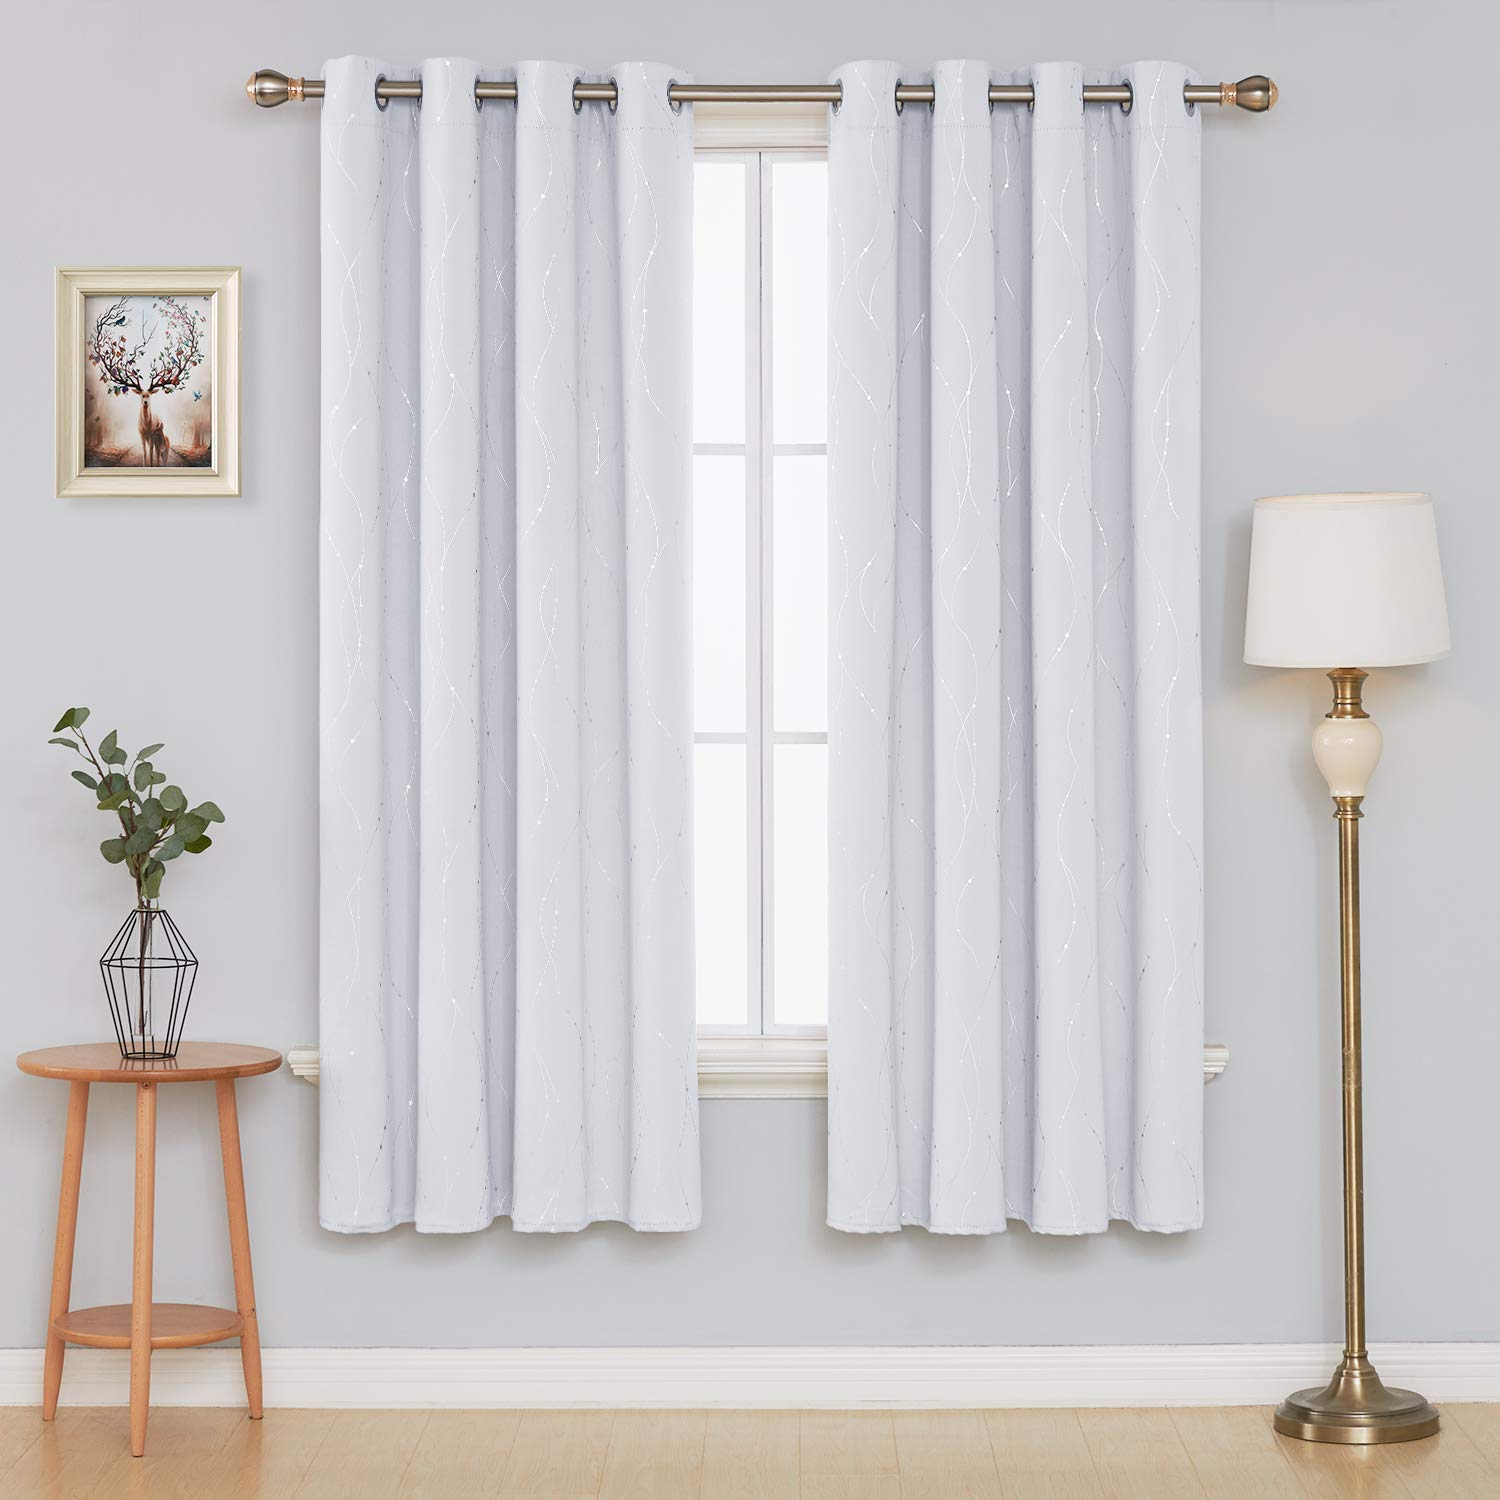 Thermal Blackout Curtains Fairytale Inspired Nursery